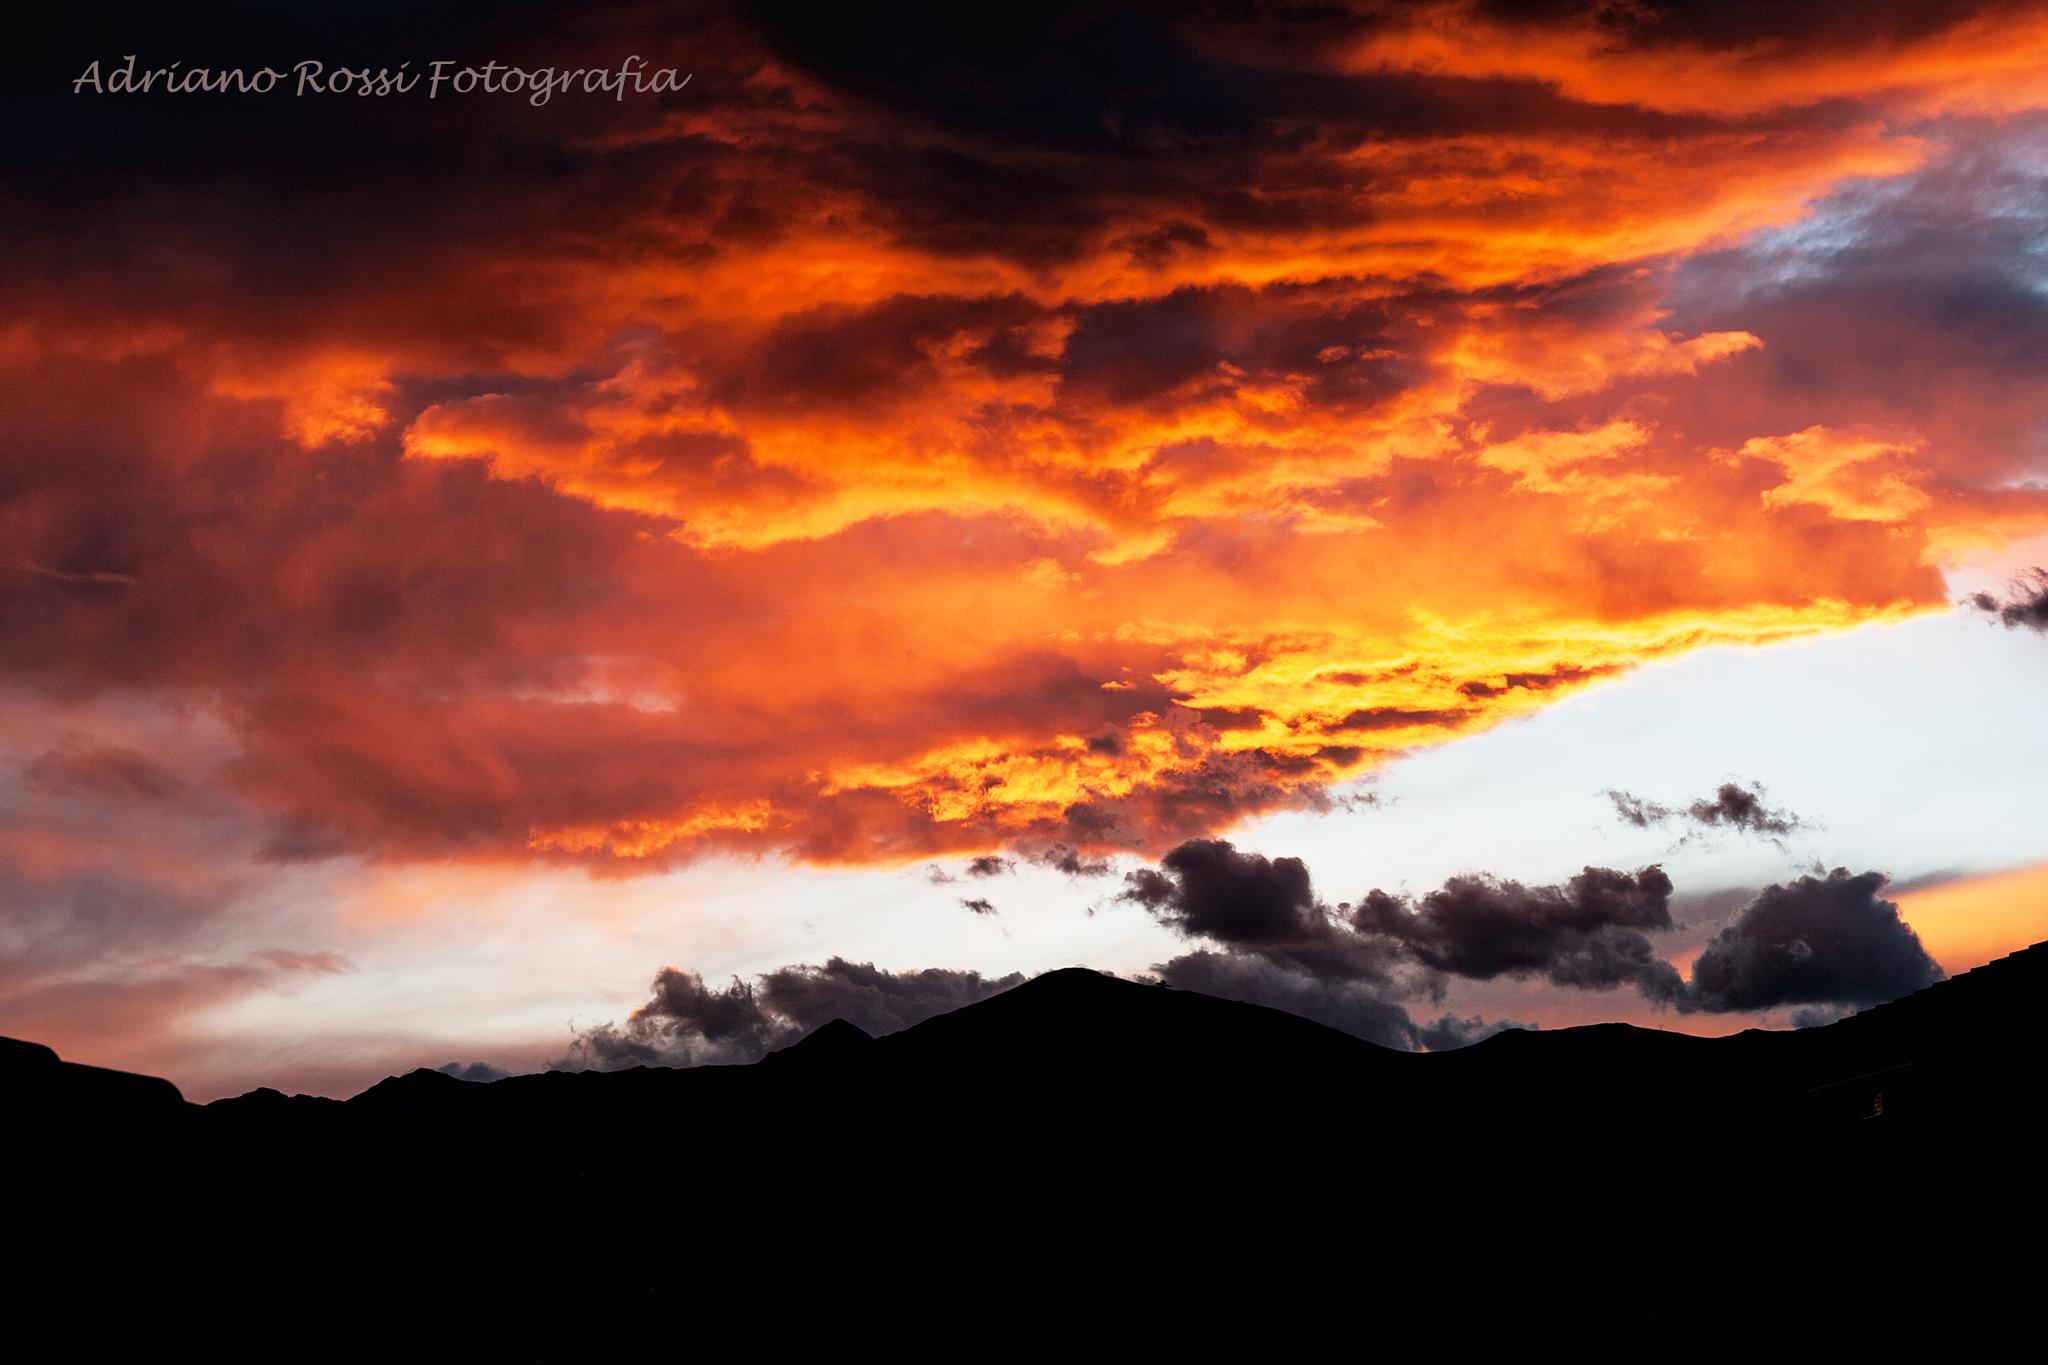 Wind storm in the mountains by adriano.rossi.7965